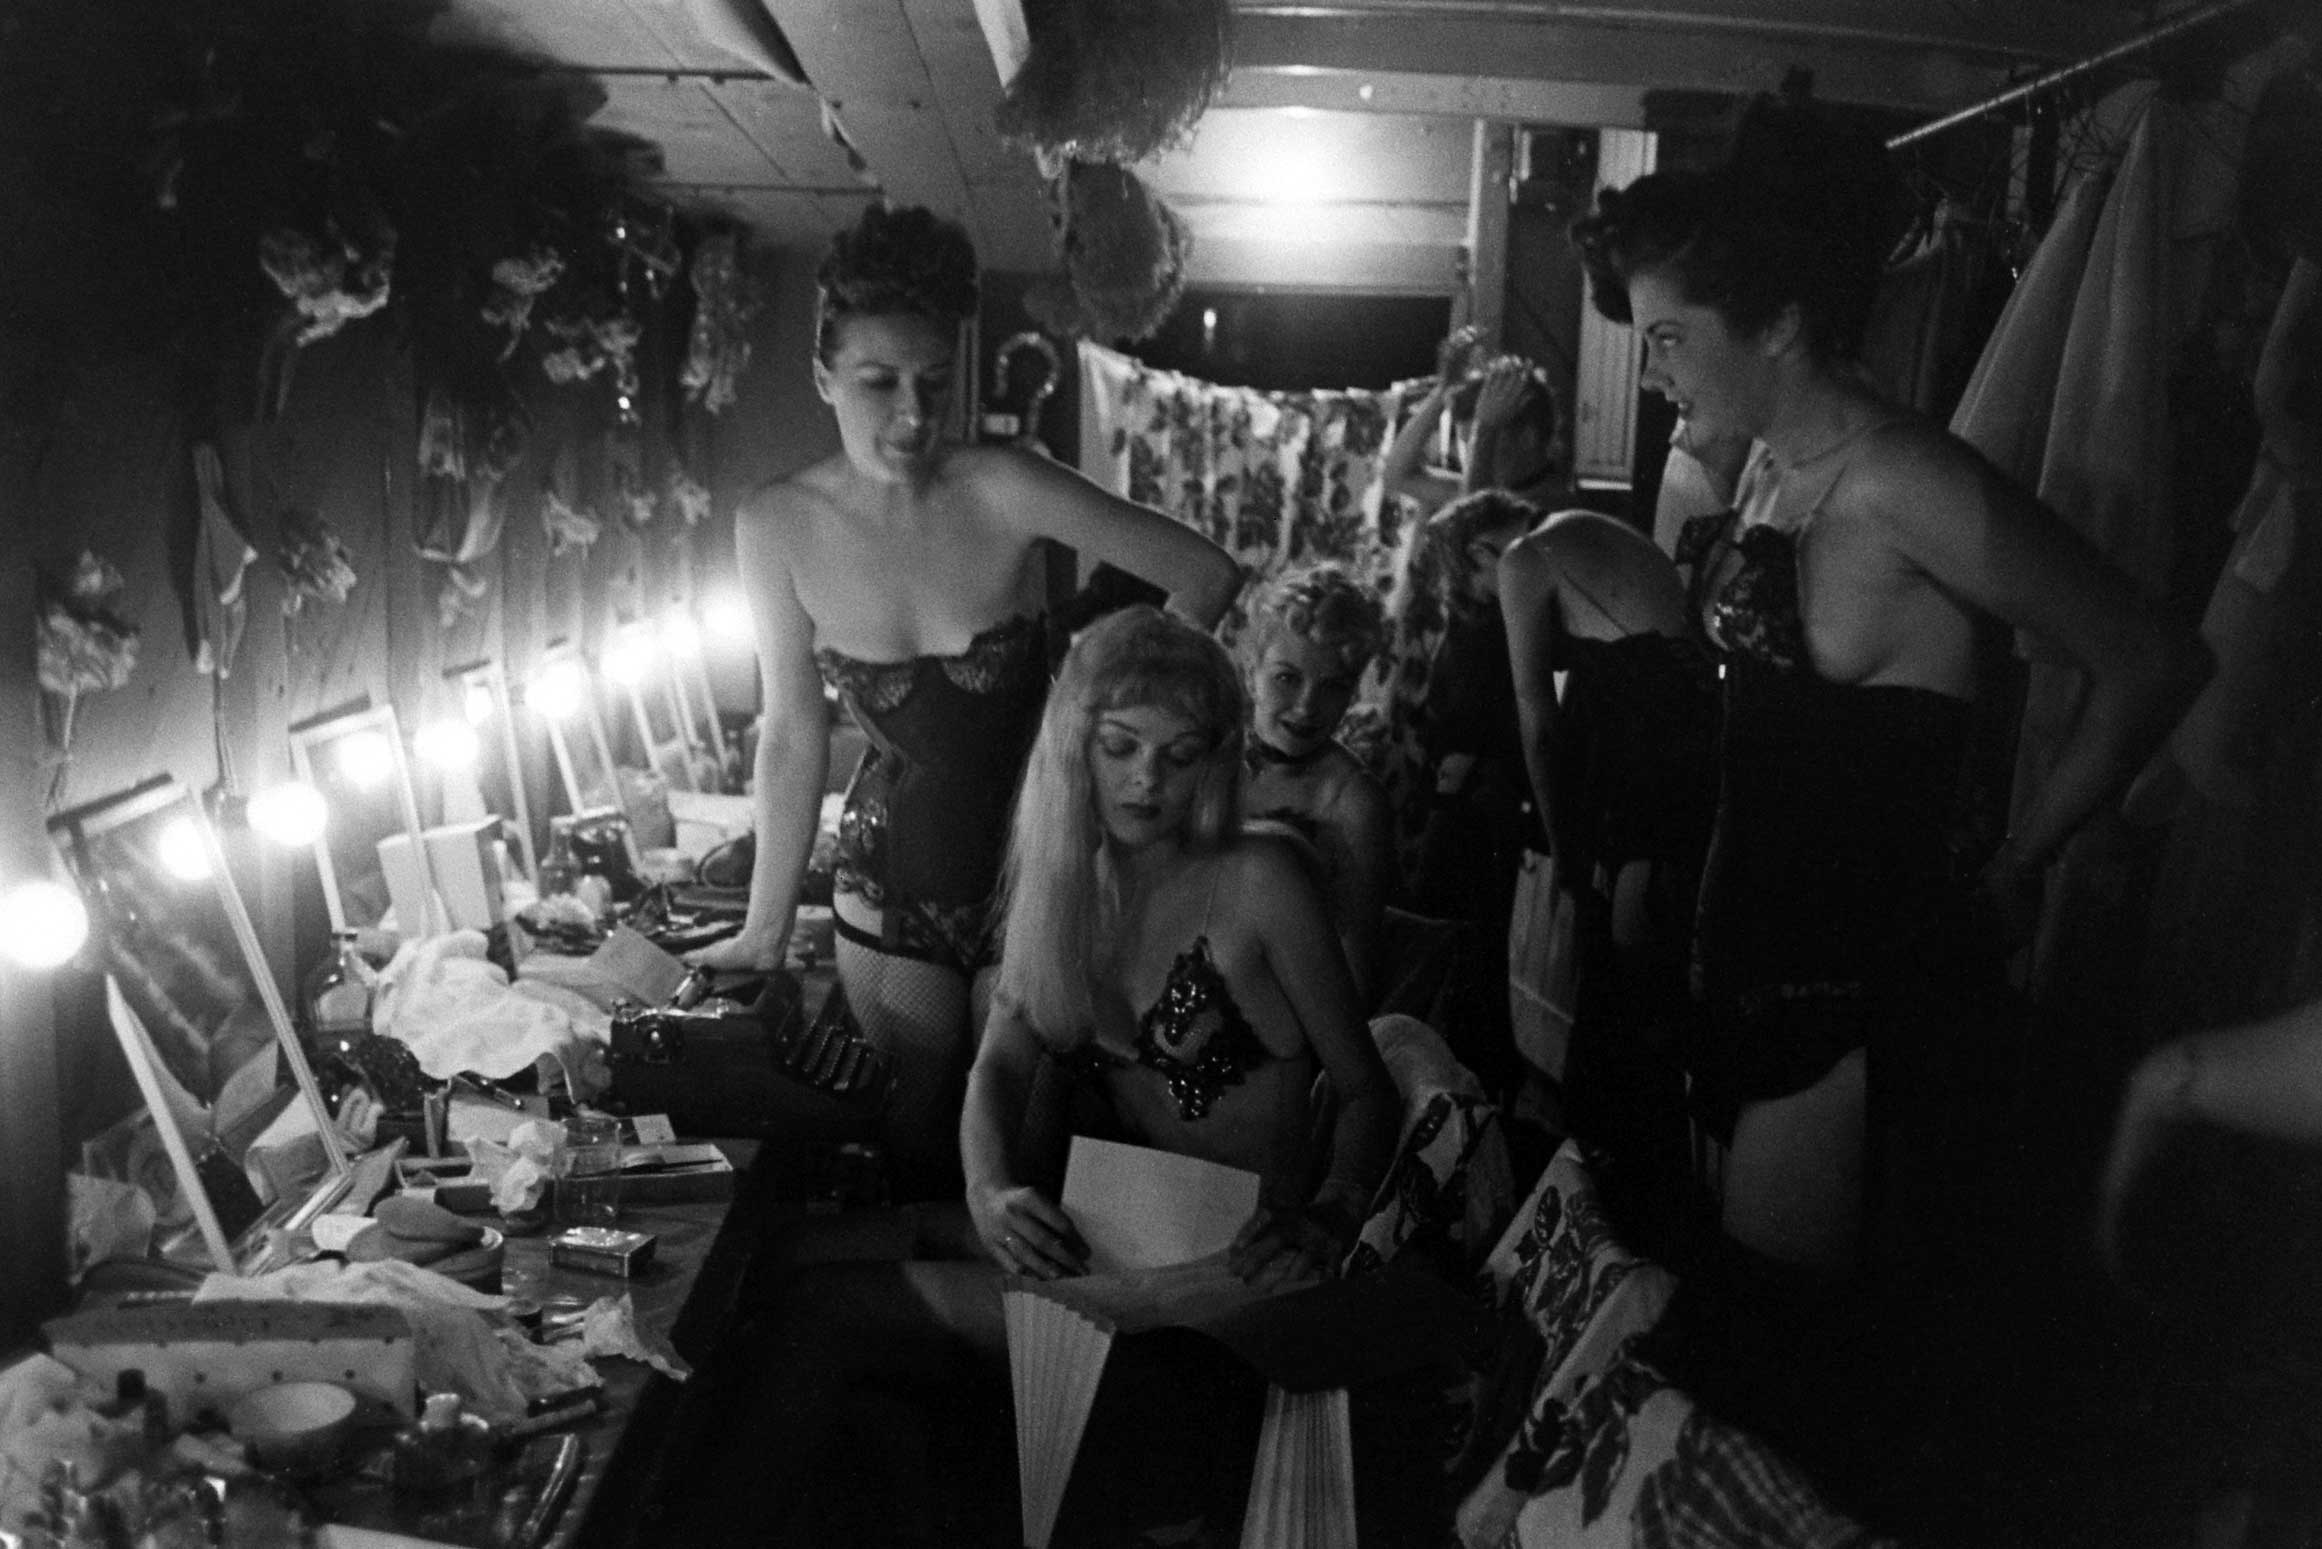 <b>Not published in LIFE.</b> Burlesque star Gypsy Rose Lee (left) and other performers in Memphis, Tenn., 1949.